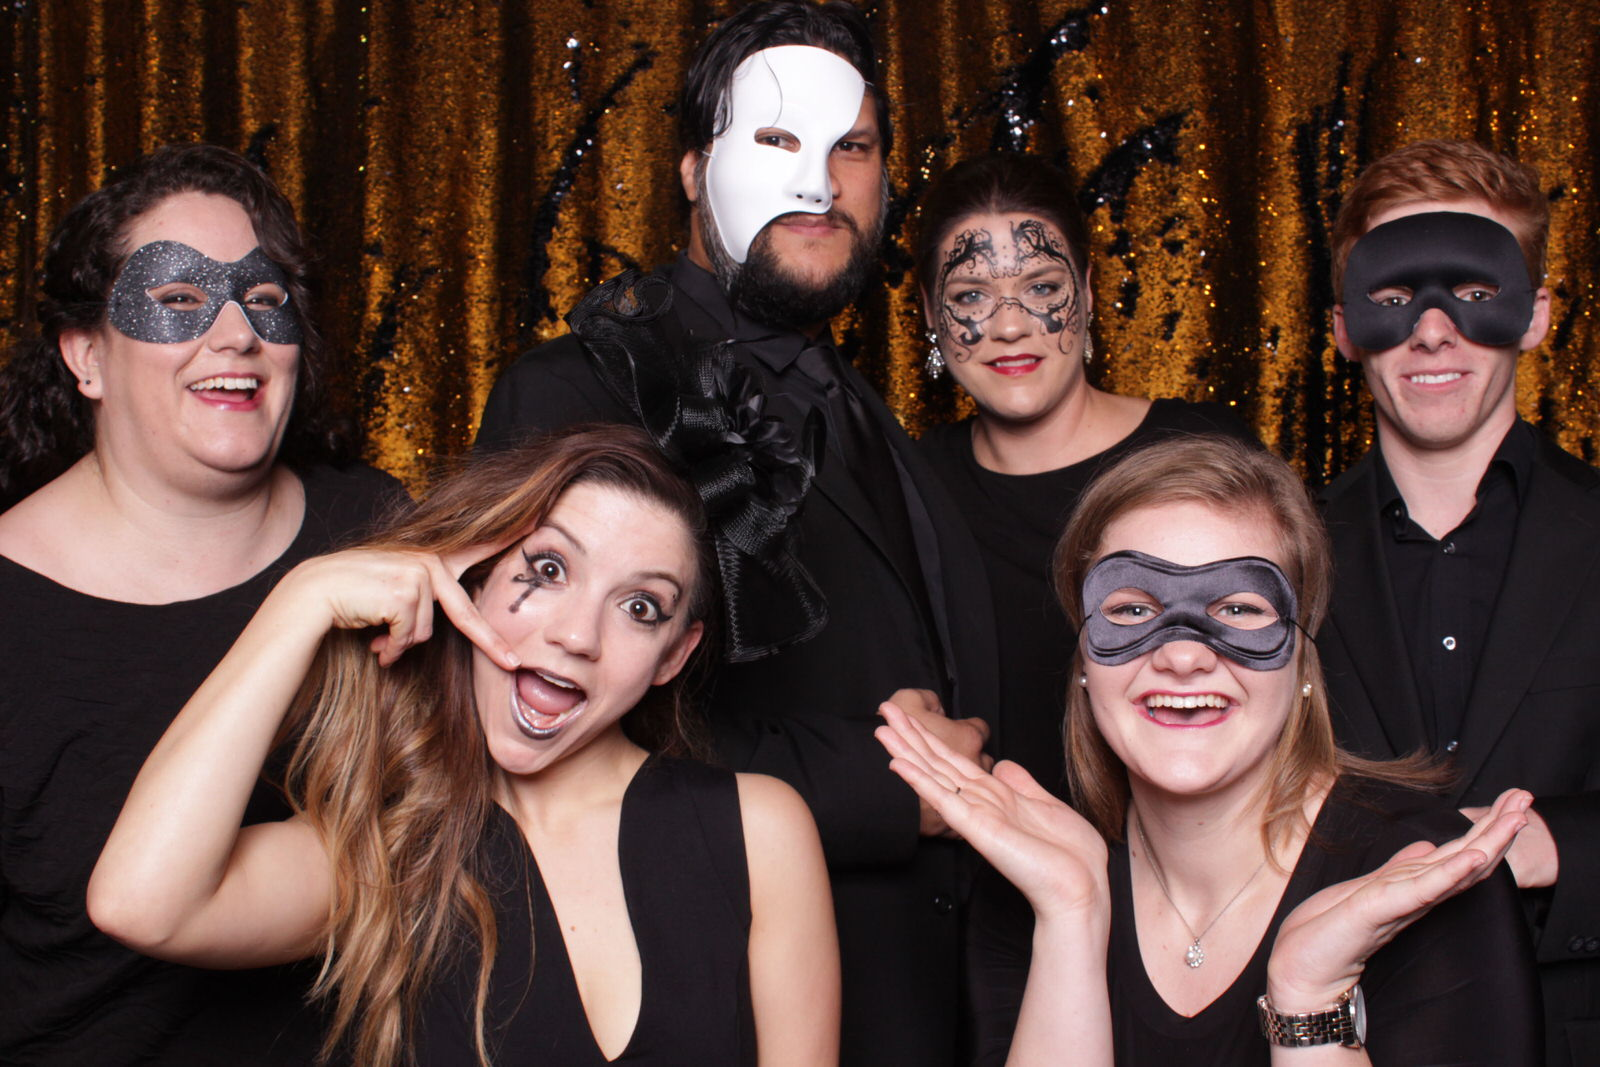 Lafayette,LA - Photo Booth - American Advertising Awards